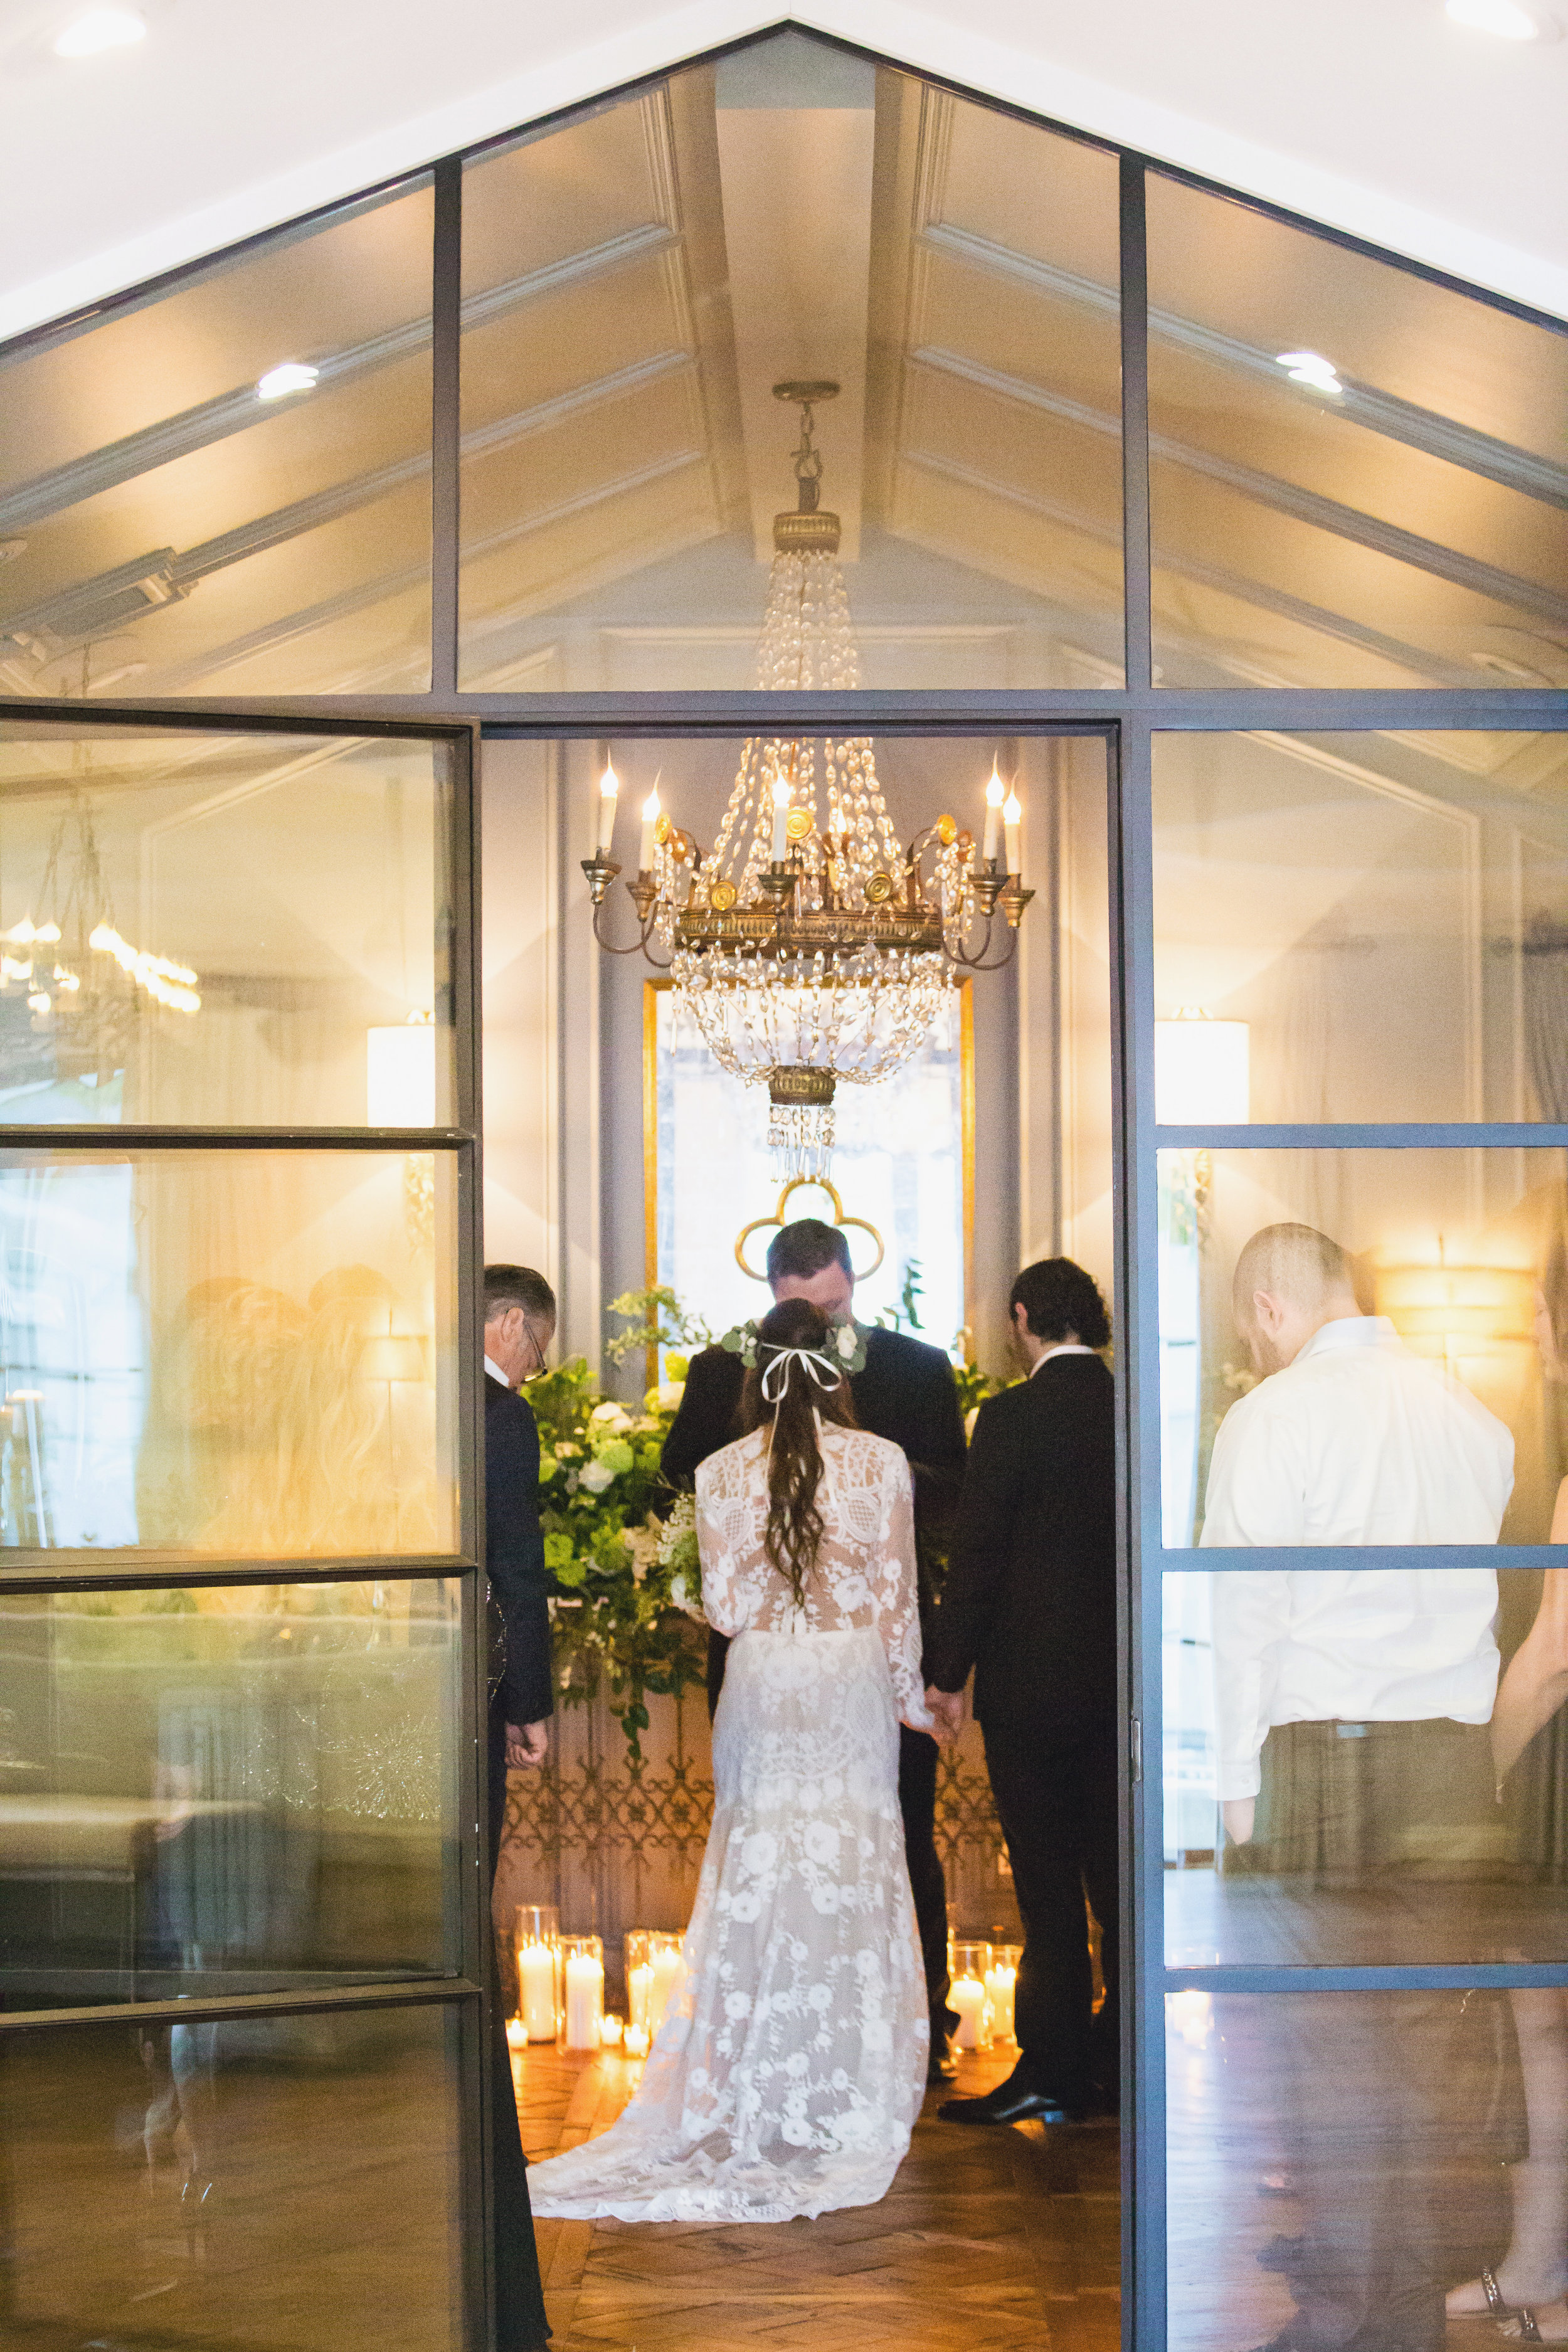 Ceremony-At-Home-Loacation-Private-Wedding-Houston.jpg